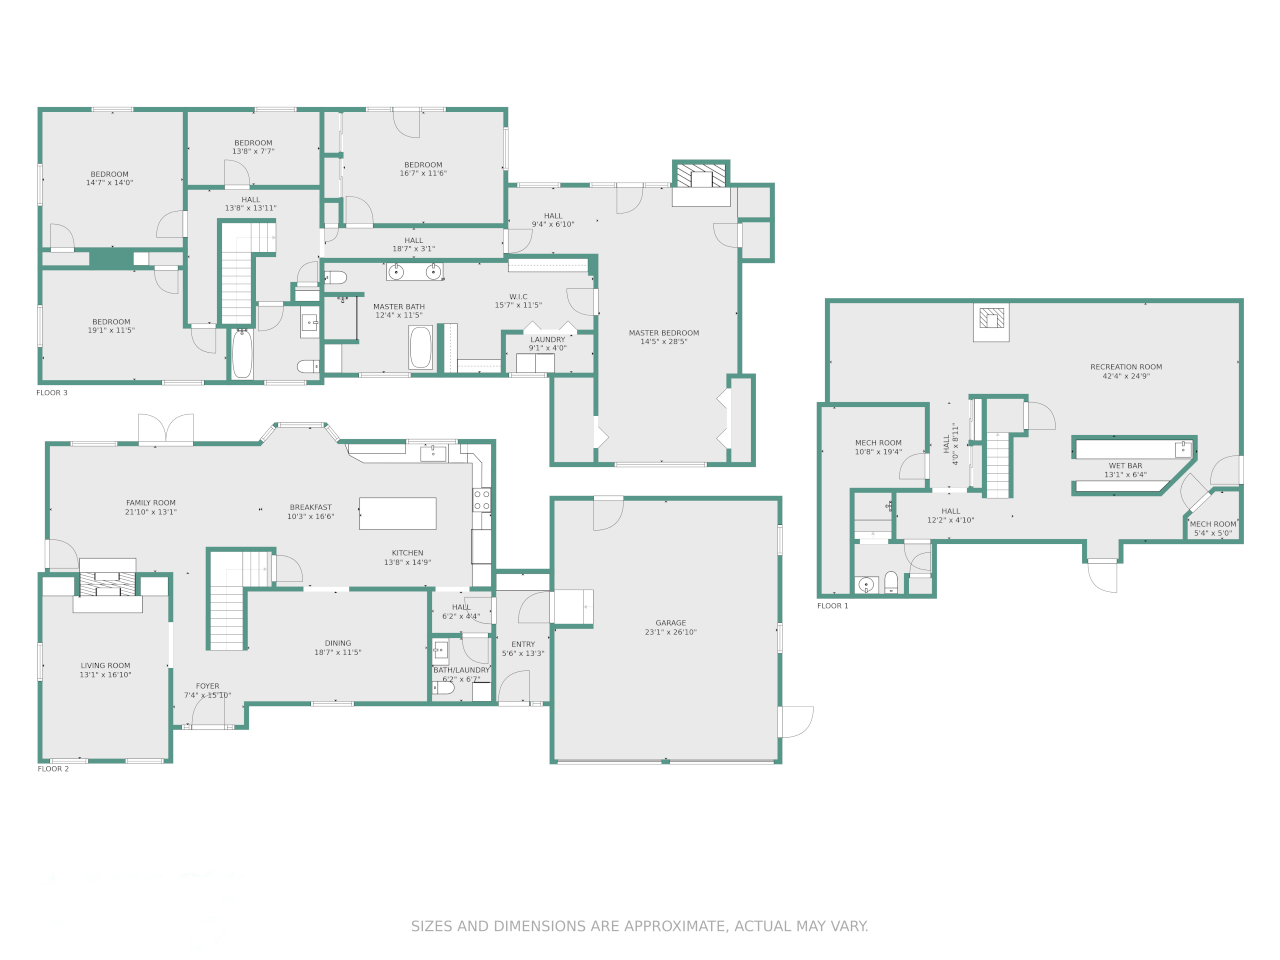 A floor plan of a multi-floor apartment with dimensions, wall color and theme color.